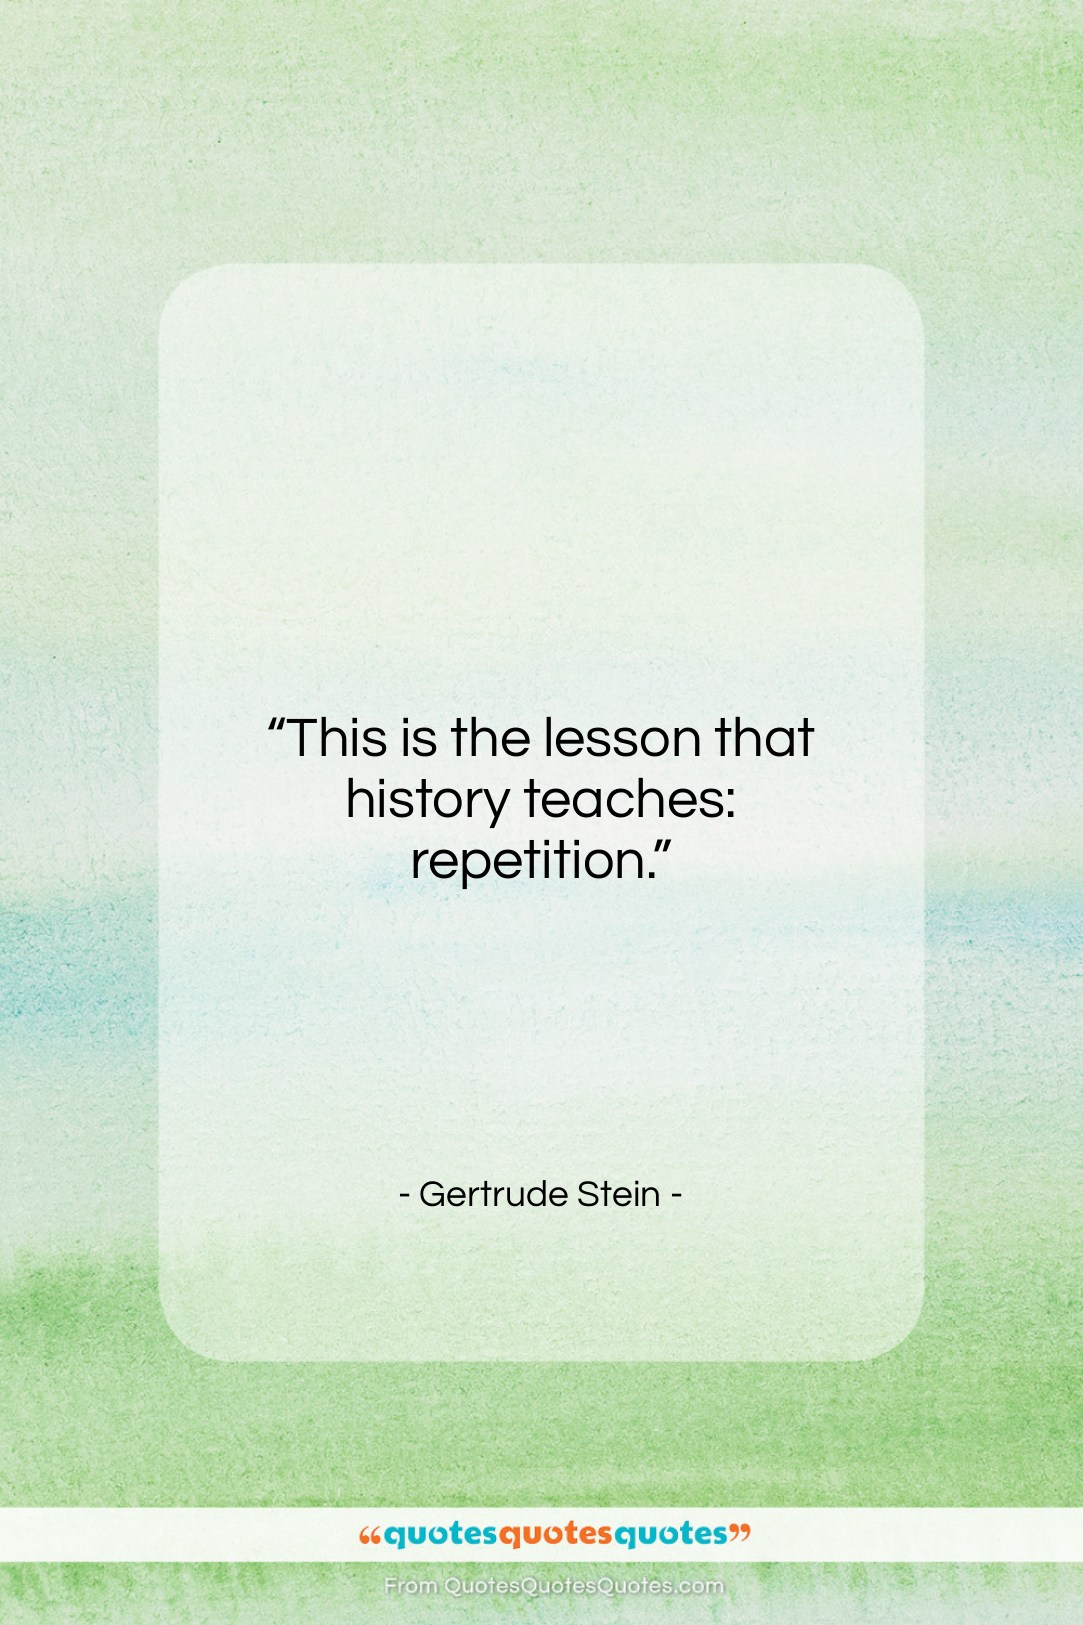 """Gertrude Stein quote: """"This is the lesson that history teaches:…""""- at QuotesQuotesQuotes.com"""